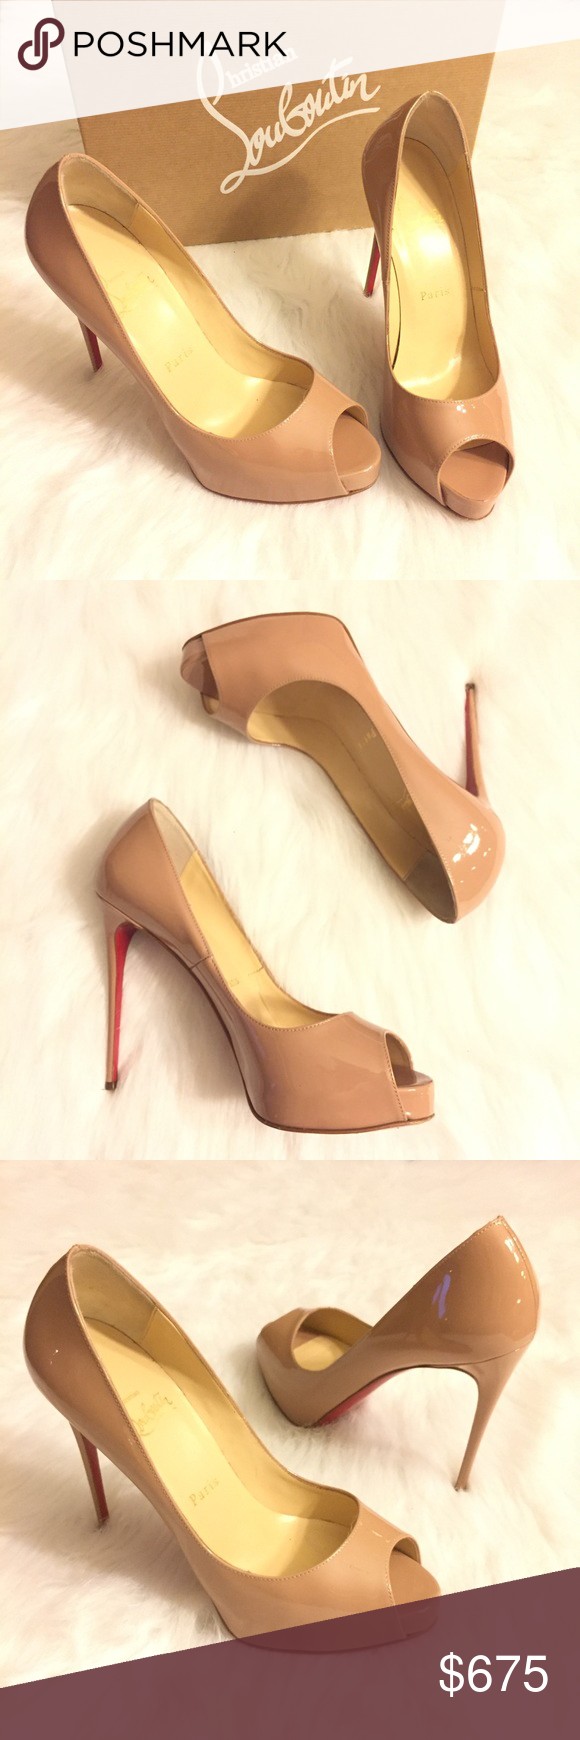 new concept 0d283 a7409 Christian Louboutin New Very Prive Heels Nude 37.5 100 ...